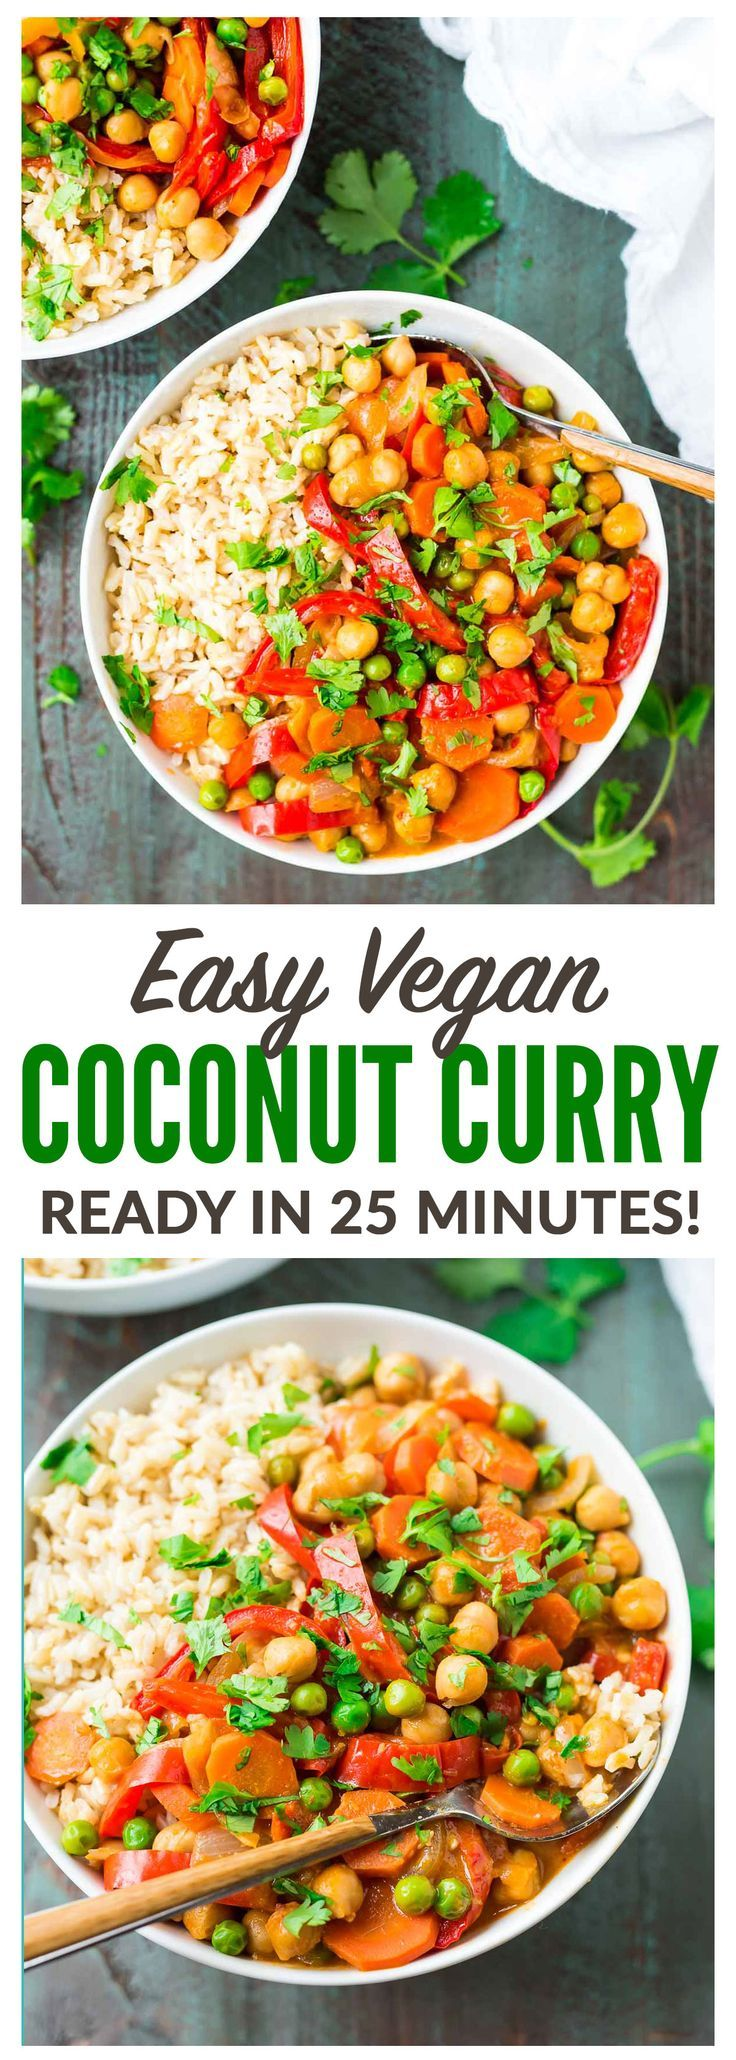 Easy Vegan Chickpea Coconut Curry—the BEST Thai curry I've ever had! Not too spicy, healthy, and full of flavor. Ready in 25 minutes! {gluten free}